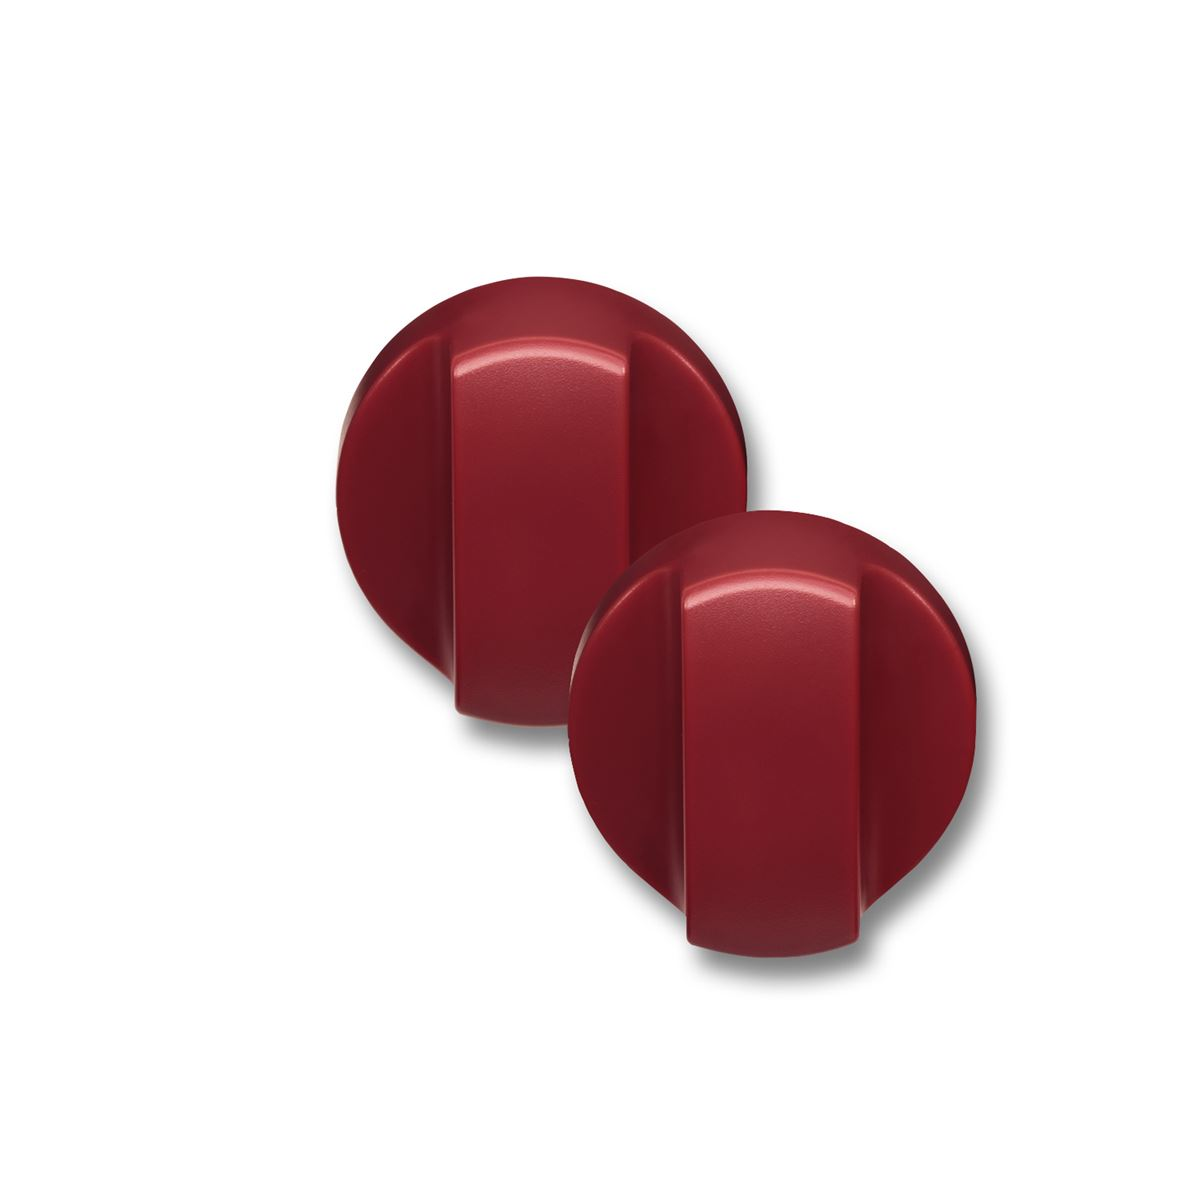 Countertop Oven Knobs Red